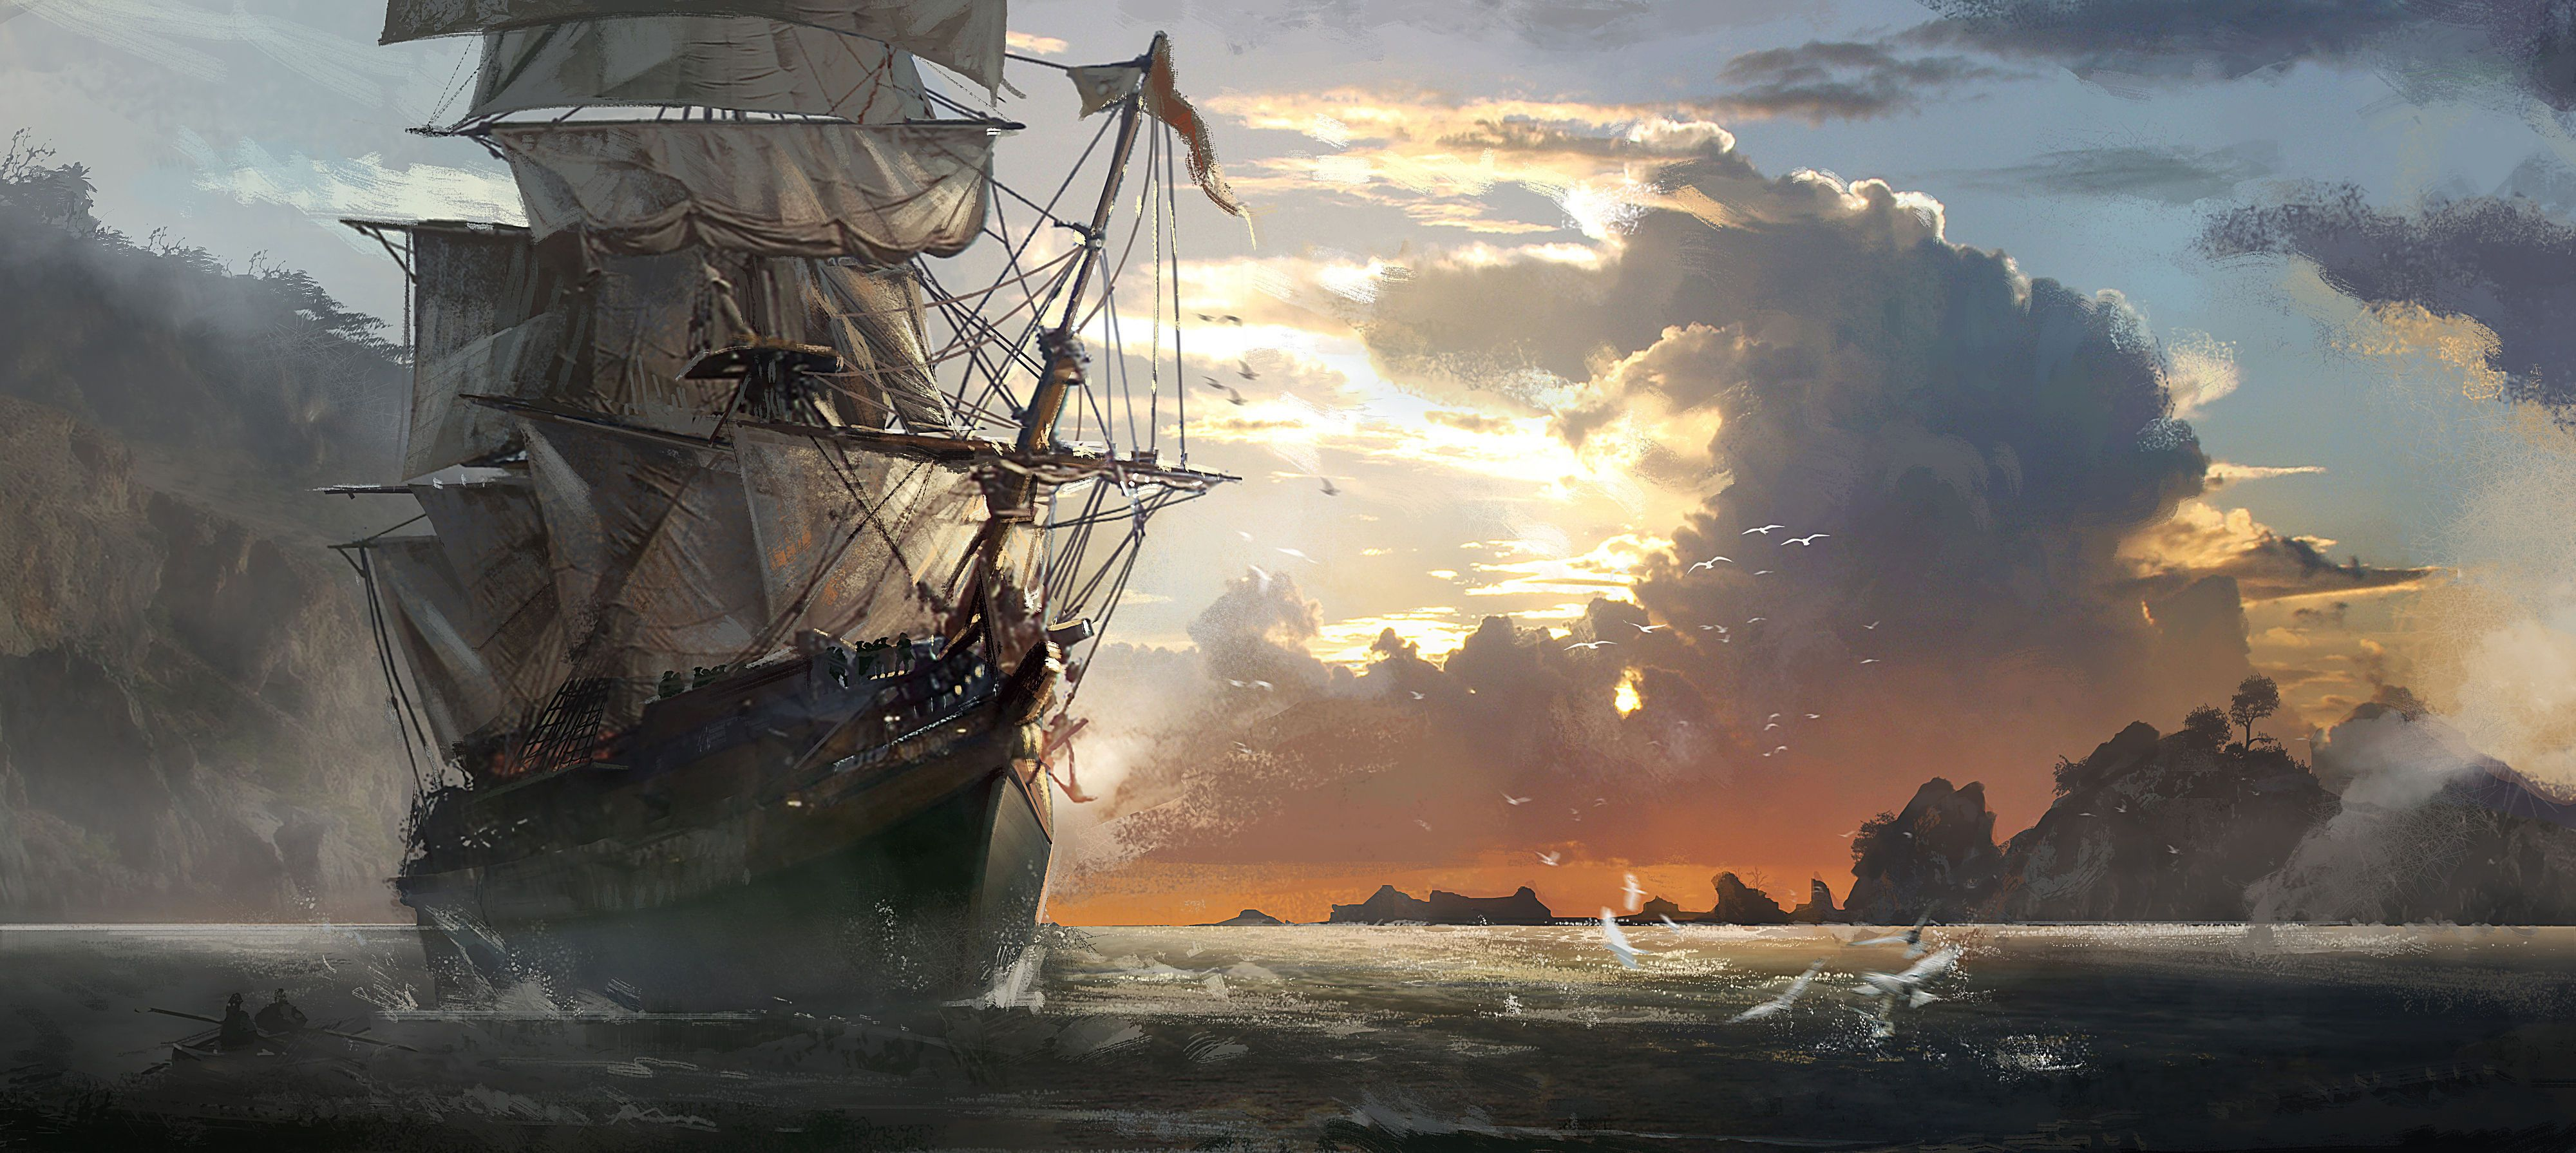 Assassin S Creed Iv Black Flag Hd Wallpapers 16 4000 X 1790 Assassins Creed Black Flag Concept Art World Seascape Art